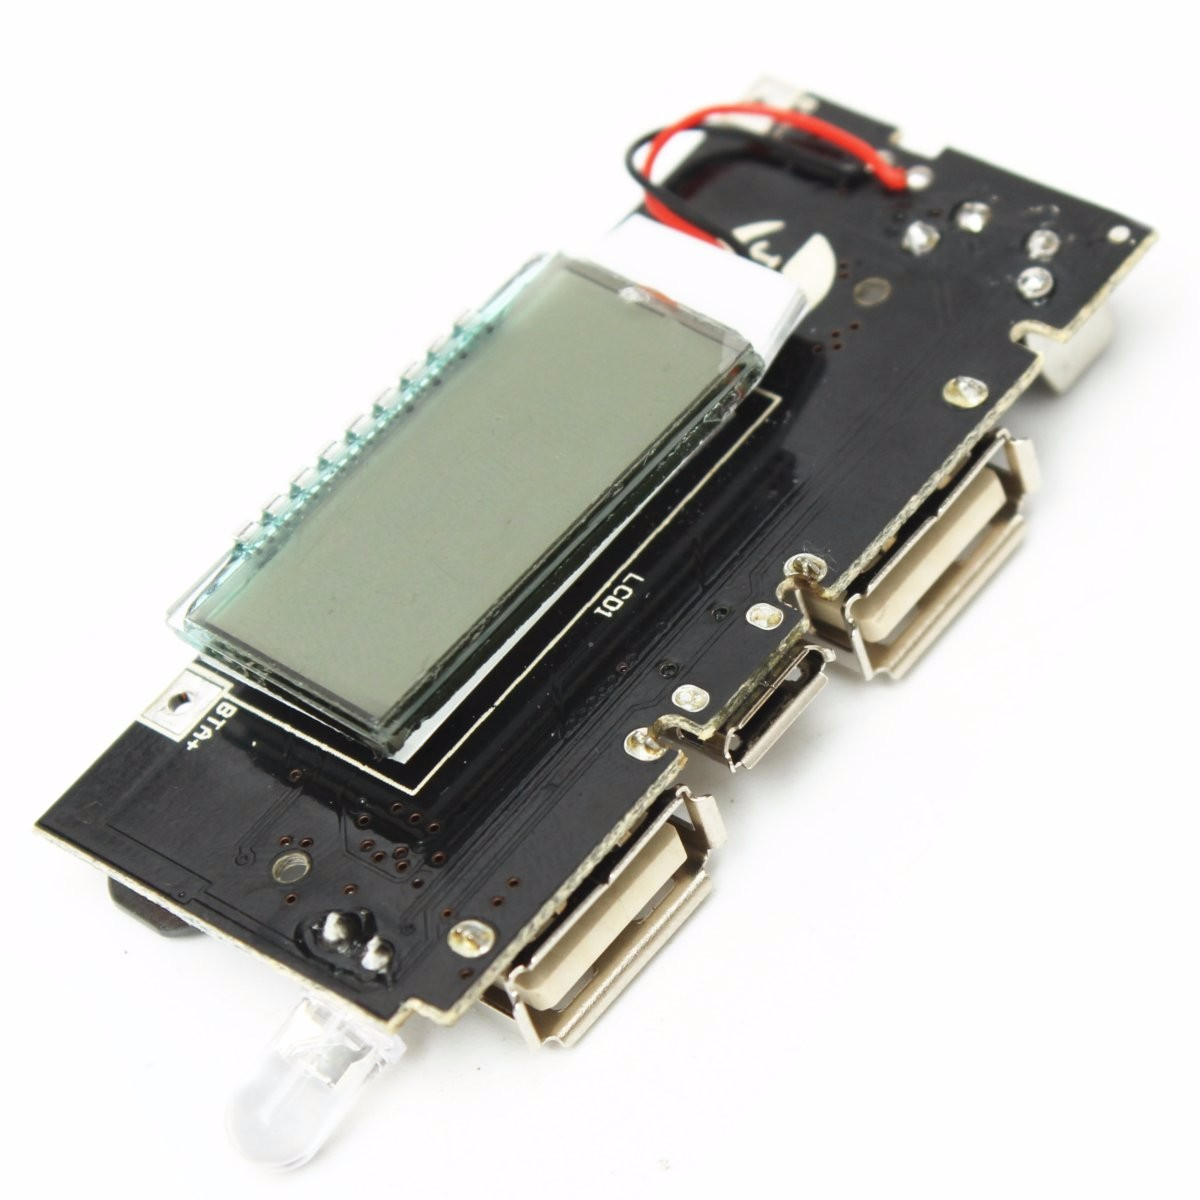 Diy 6 Charge Lcd Screen 18650 Mobile Power Box Motherboard Kit Fm Pcb Circuit Boardpcb Board Assemblycar Radio Usb Am 2pcs Dual 5v 1a 21a Bank Battery Charger Module